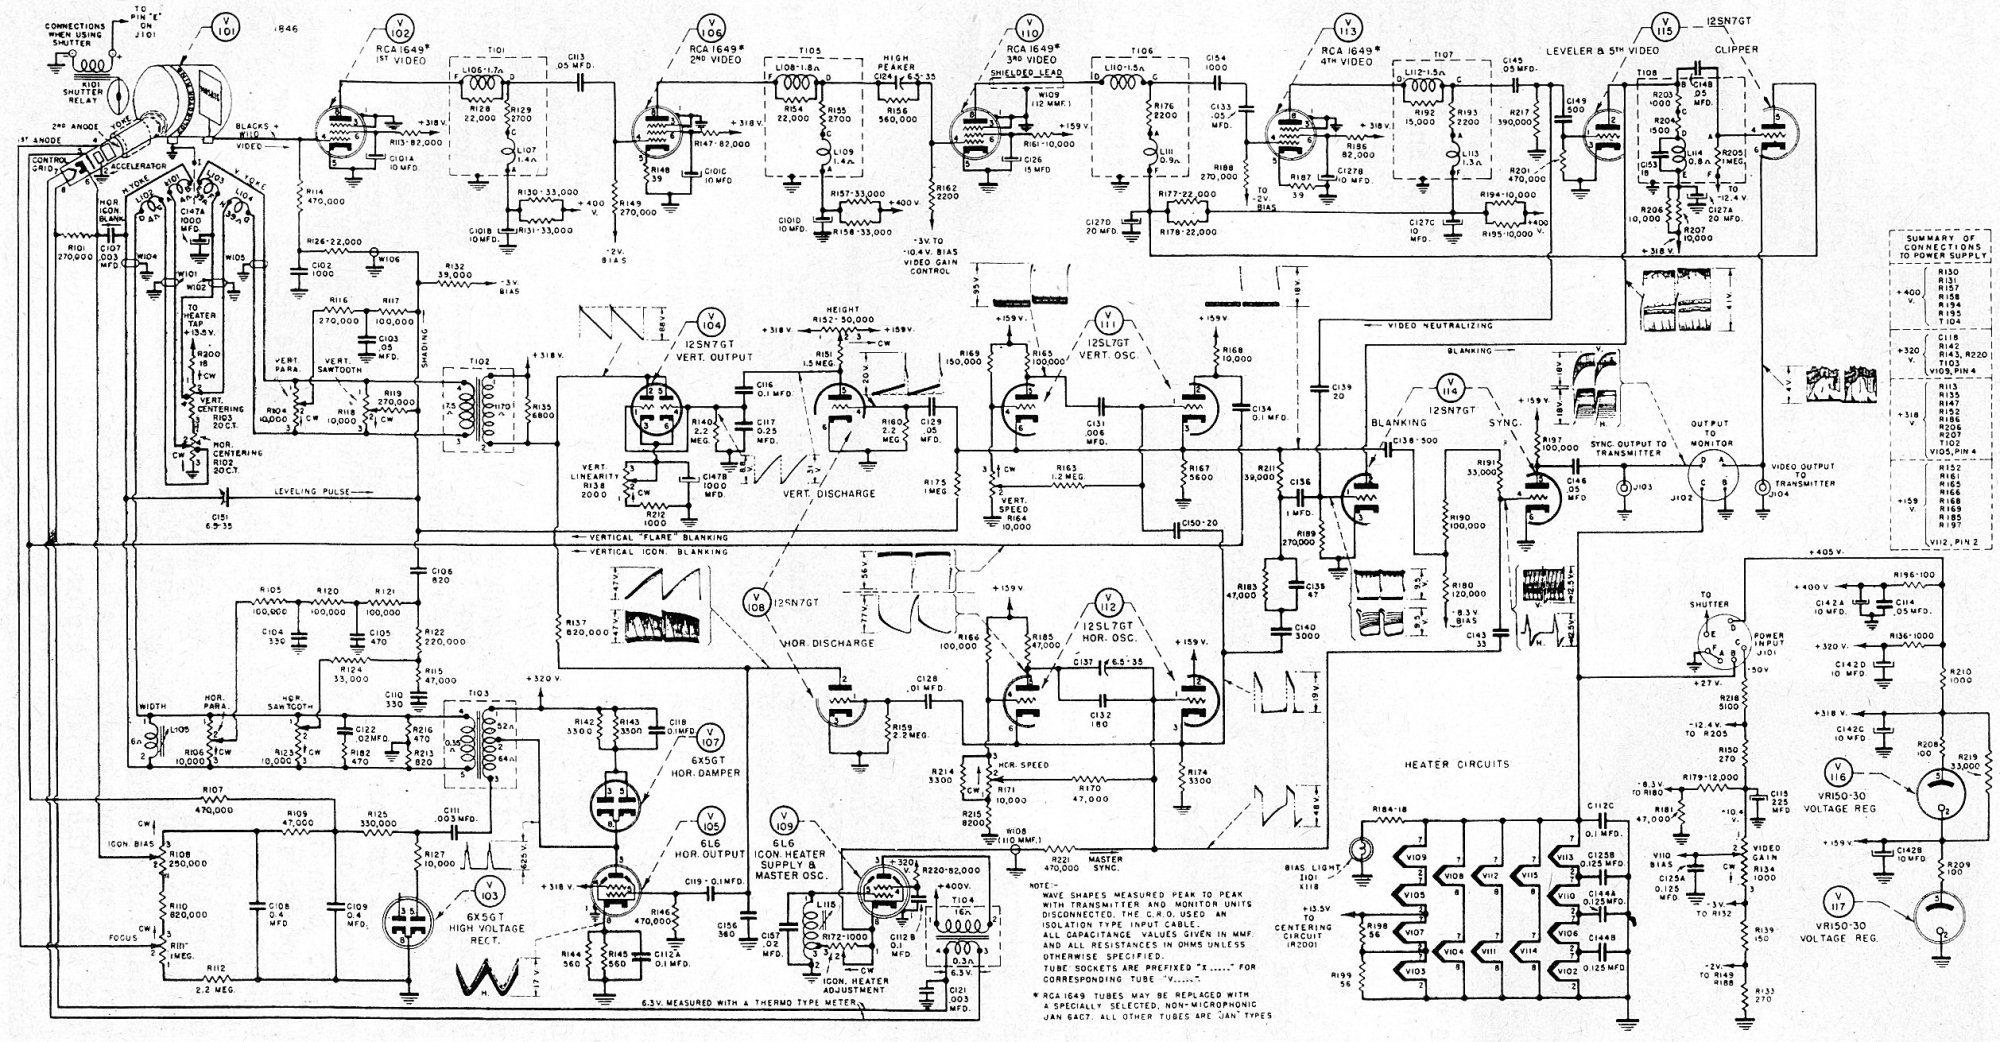 hight resolution of schematic of the crv 59aae iconoscope camera 2500x1300 956kb